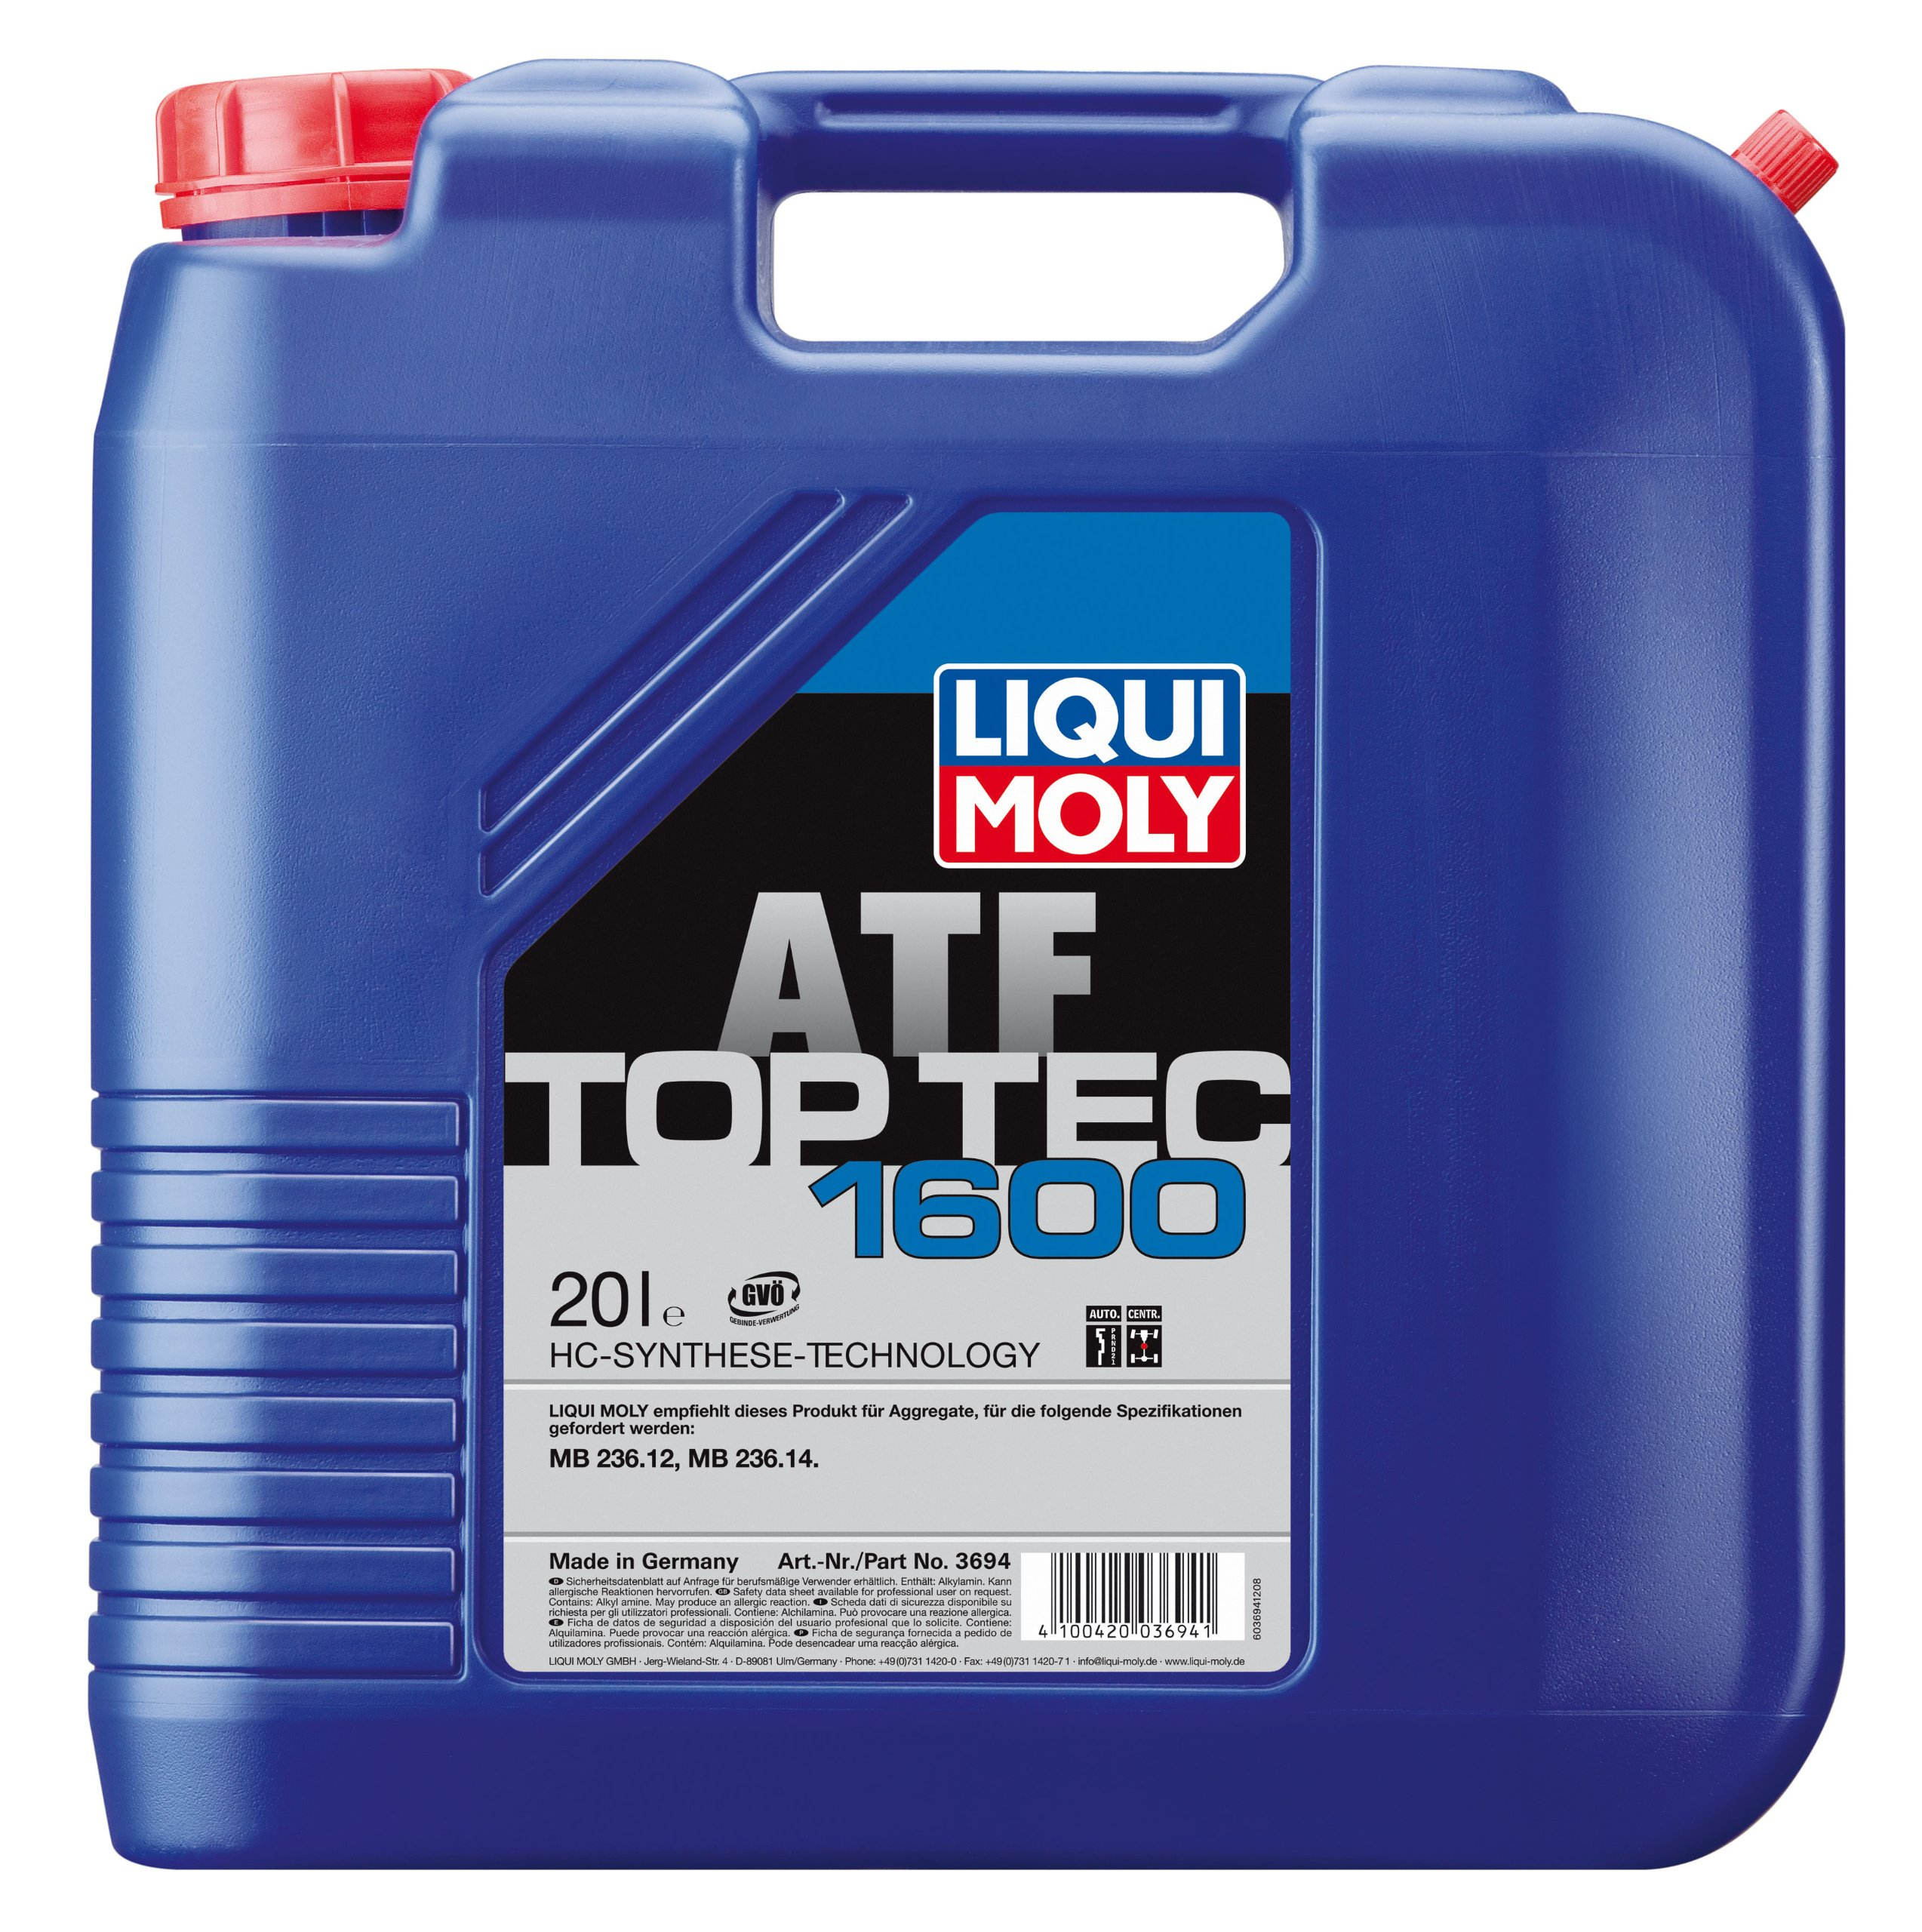 Liqui Moly 3694 Top Tec ATF 1600 Automatic Transmission Fluid - 20 Liter